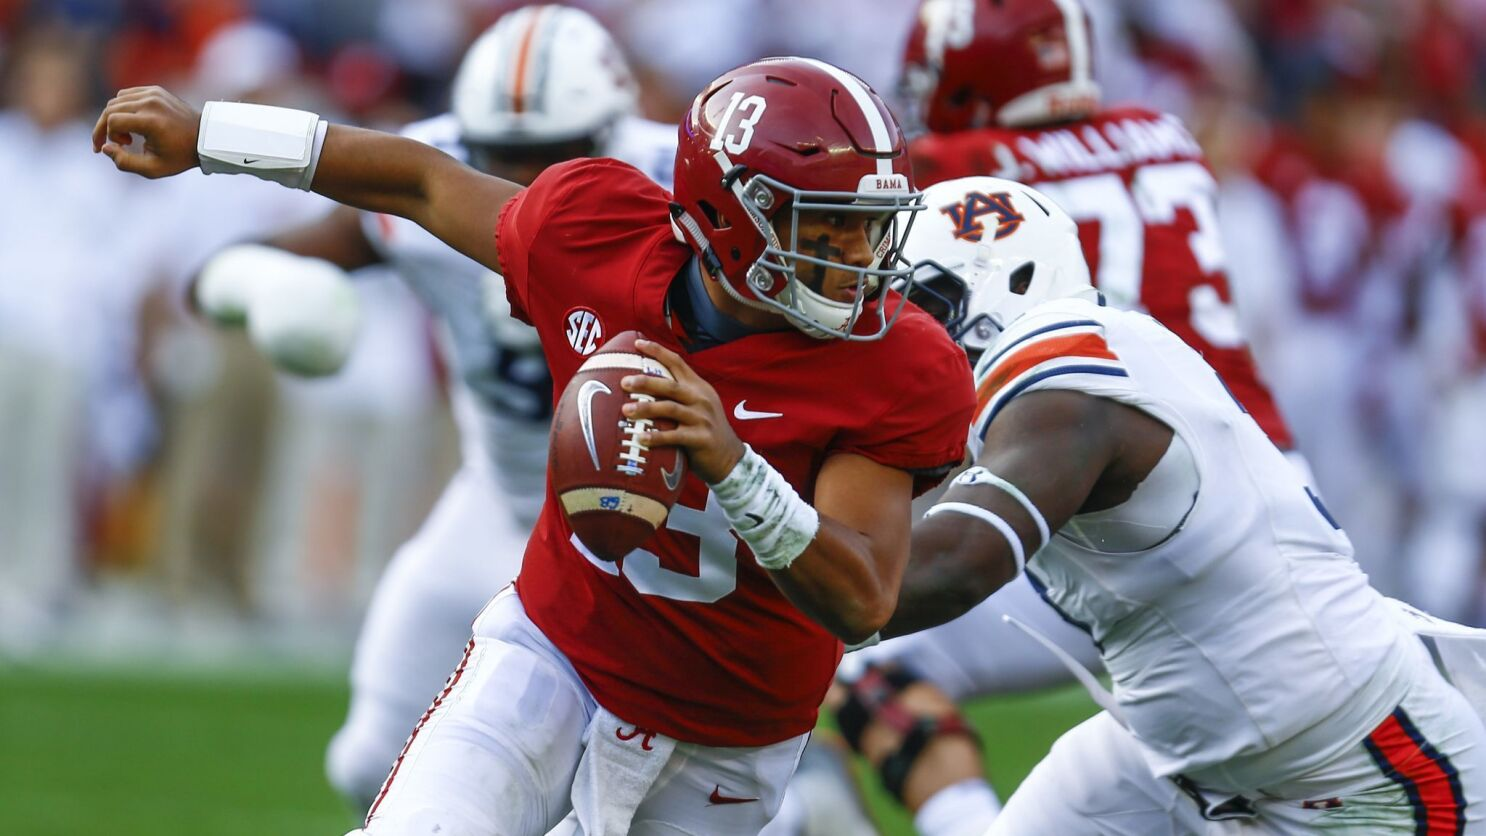 Top Rookie Quarterbacks 2020.Nfl Mock Draft 2020 Way Too Early Projections The San Diego Union